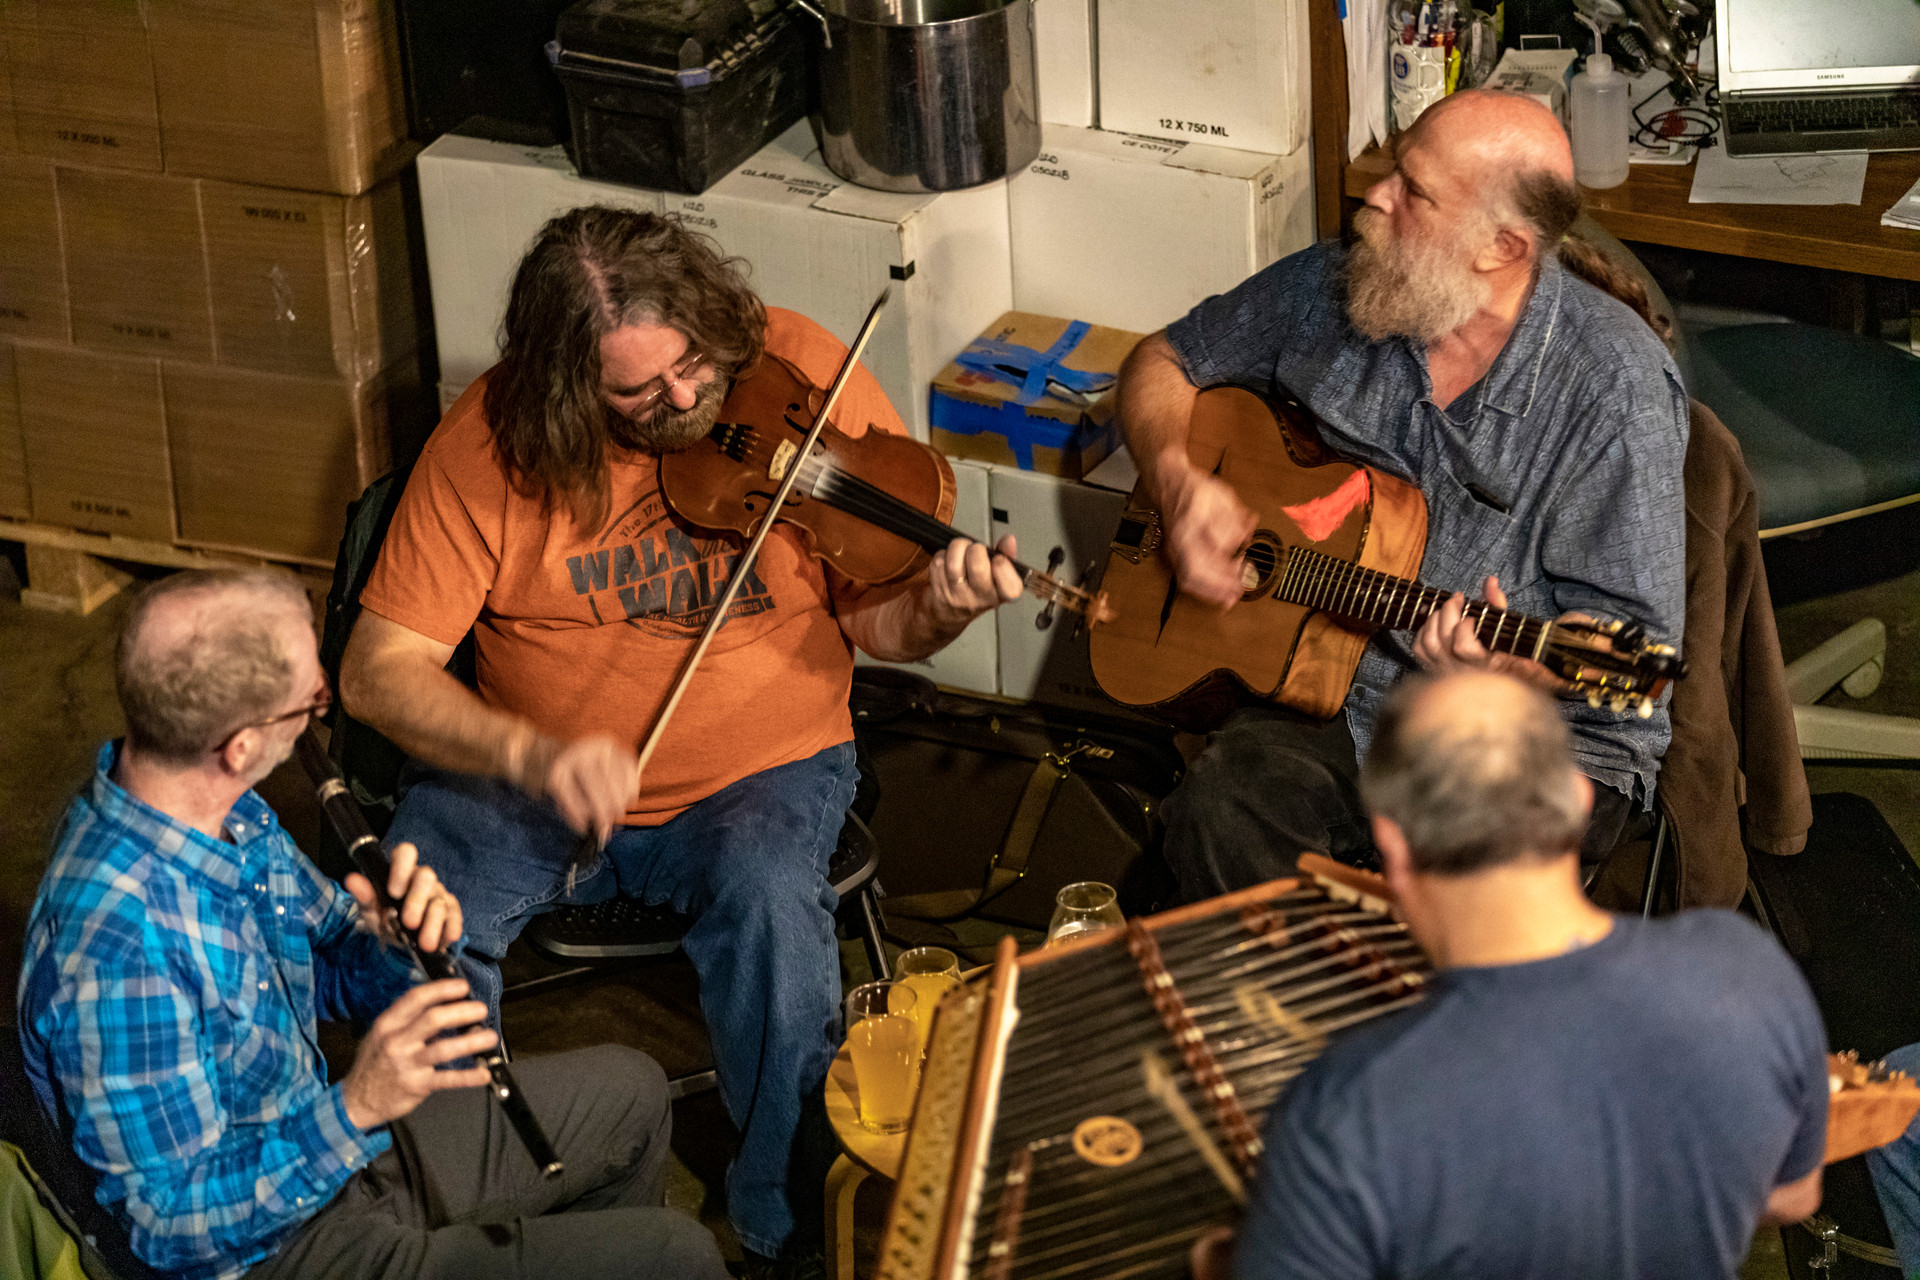 From right to left, Ed Newman, Chris Ridgway, Rusty Smith and Lynn Shaw participate in Celtic Night at Little Fish Brewing Company in Athens, Ohio, on October 30, 2018. Celtic Night is every Tuesday during the summer and fall in the taproom. Little Fish Brewing Company packed with customers in Athens, Ohio, on October 20, 2018.